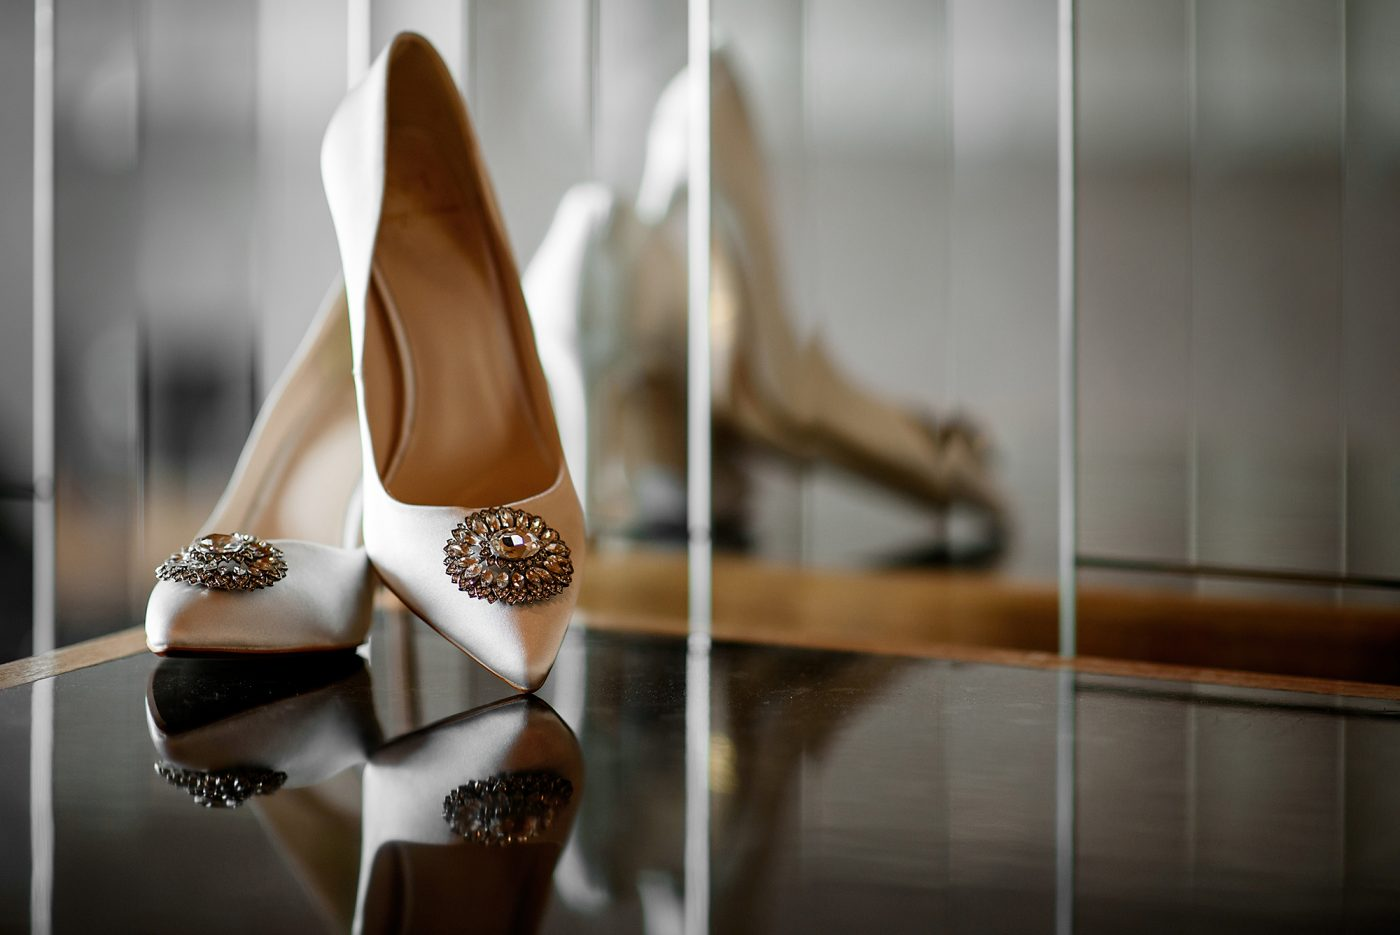 wedding shoes in front of mirrored wall